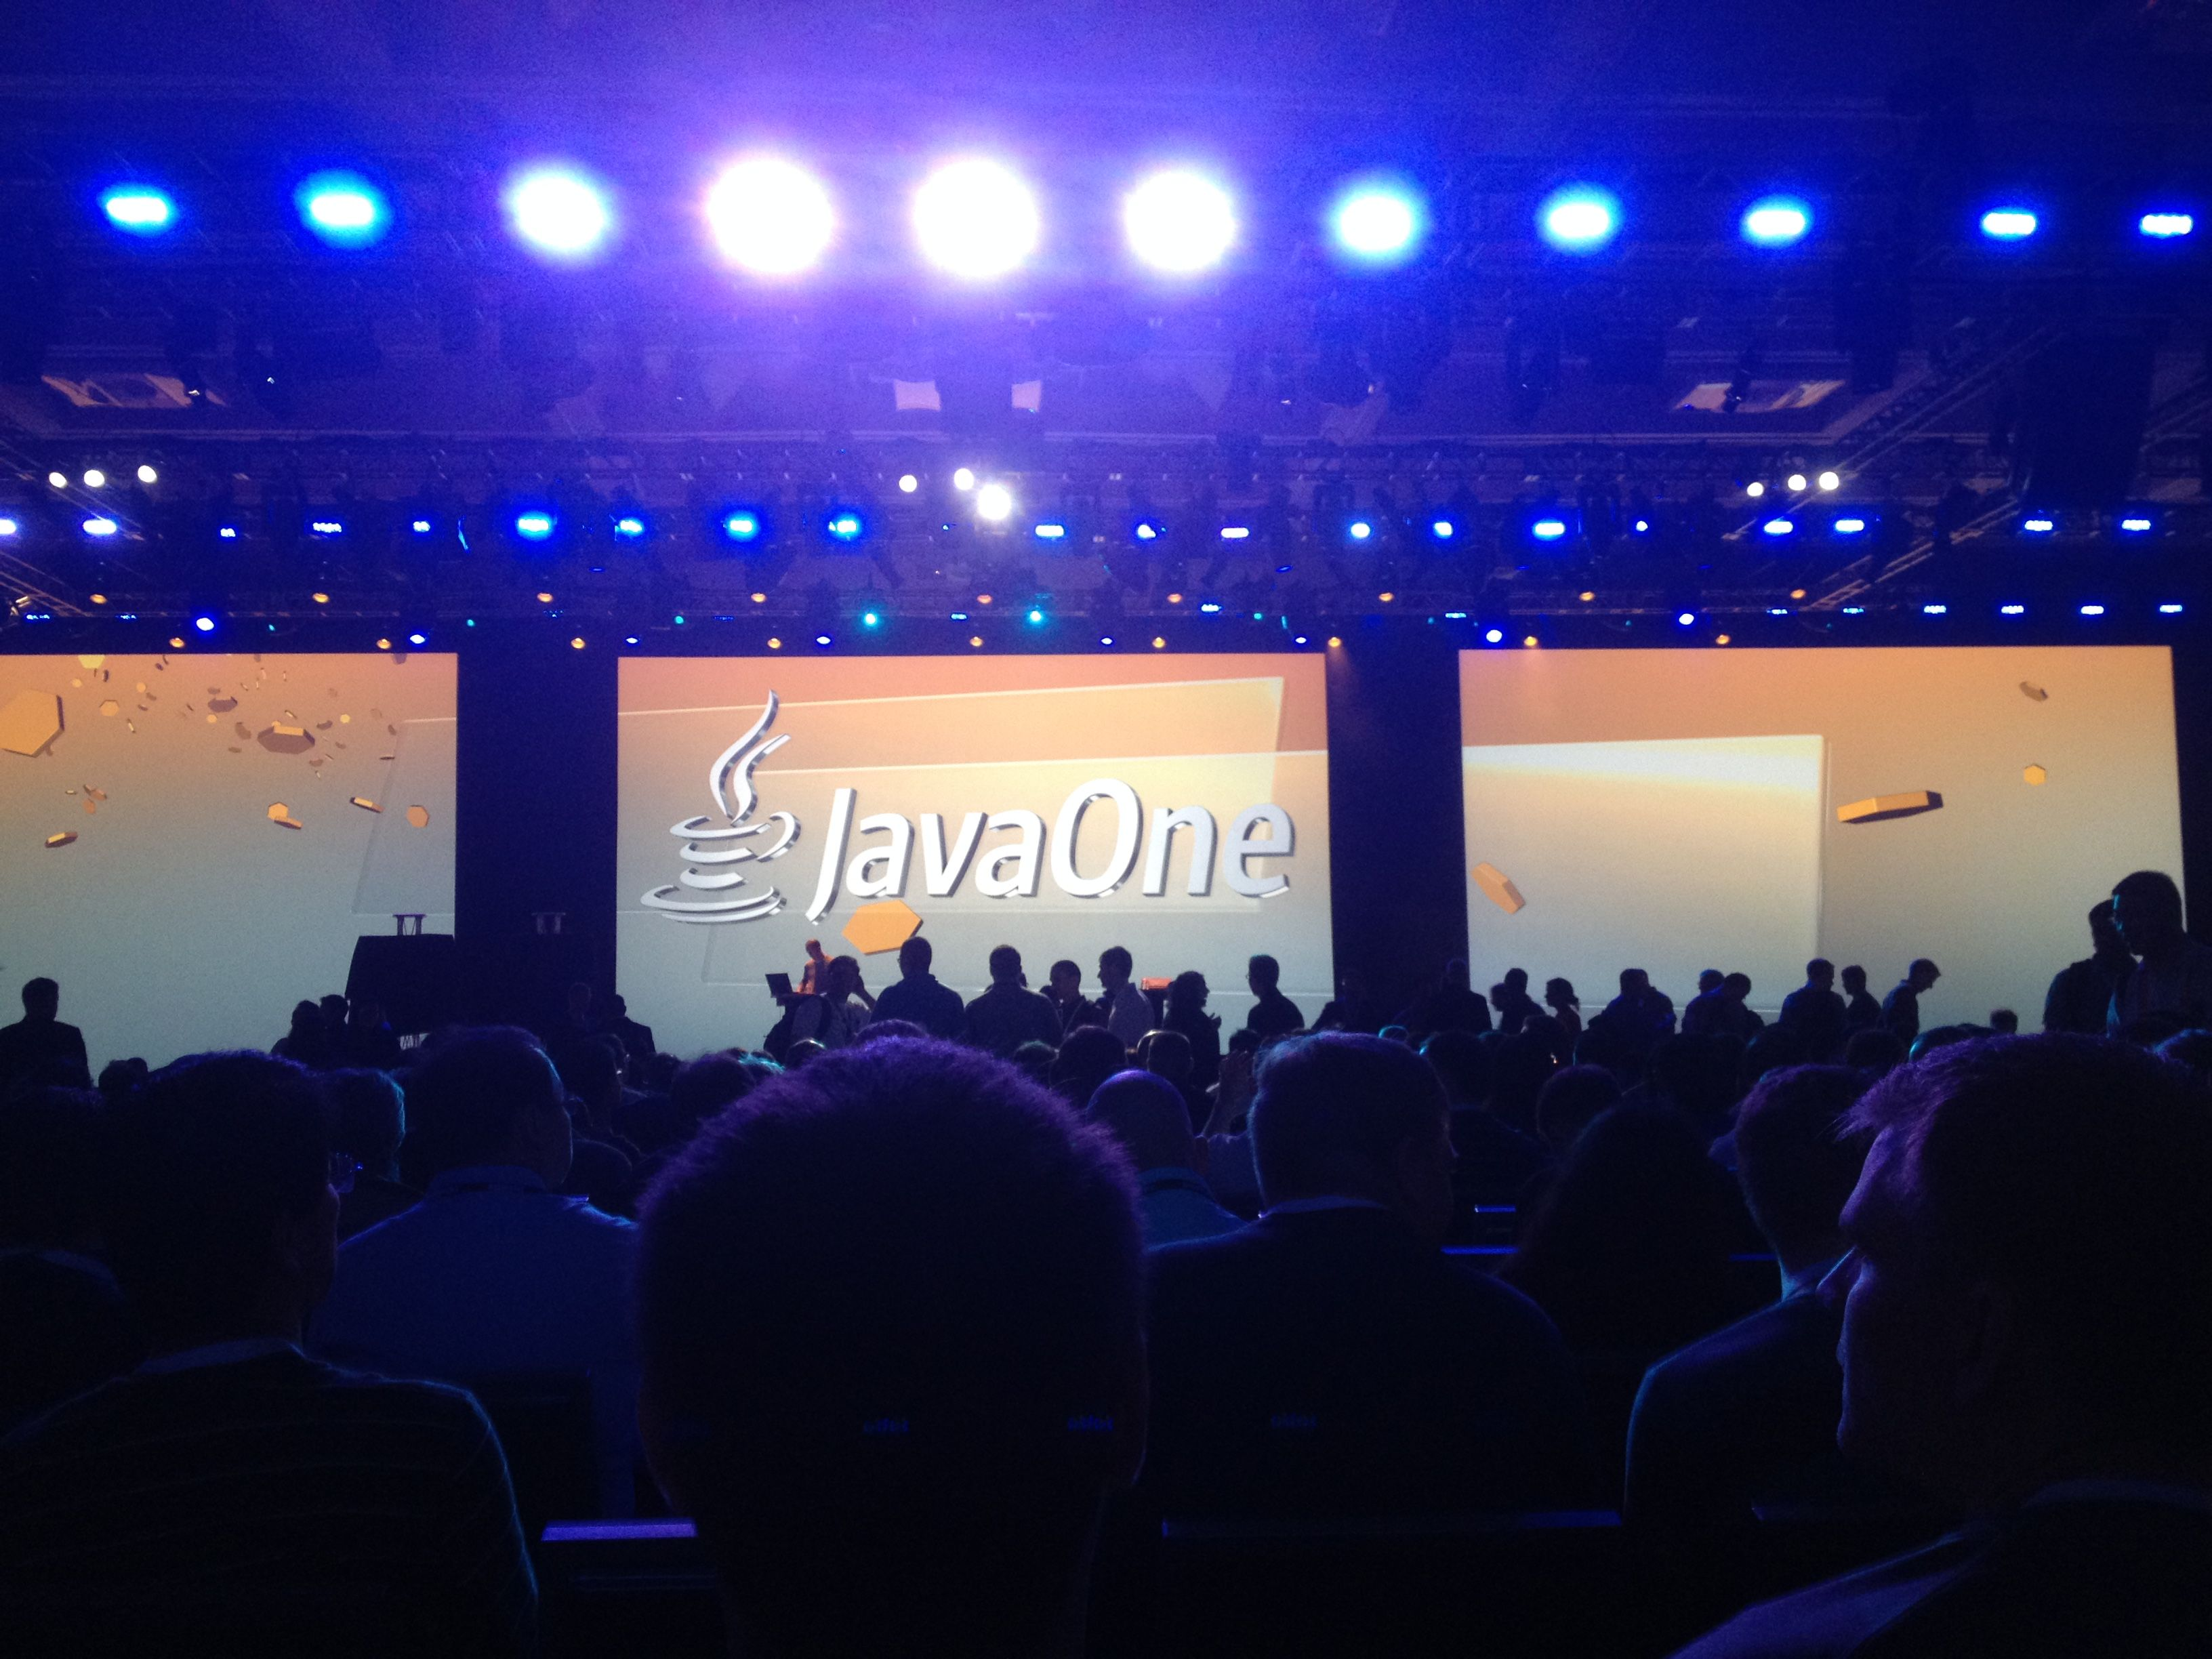 Javaone 2011 technical keynote software